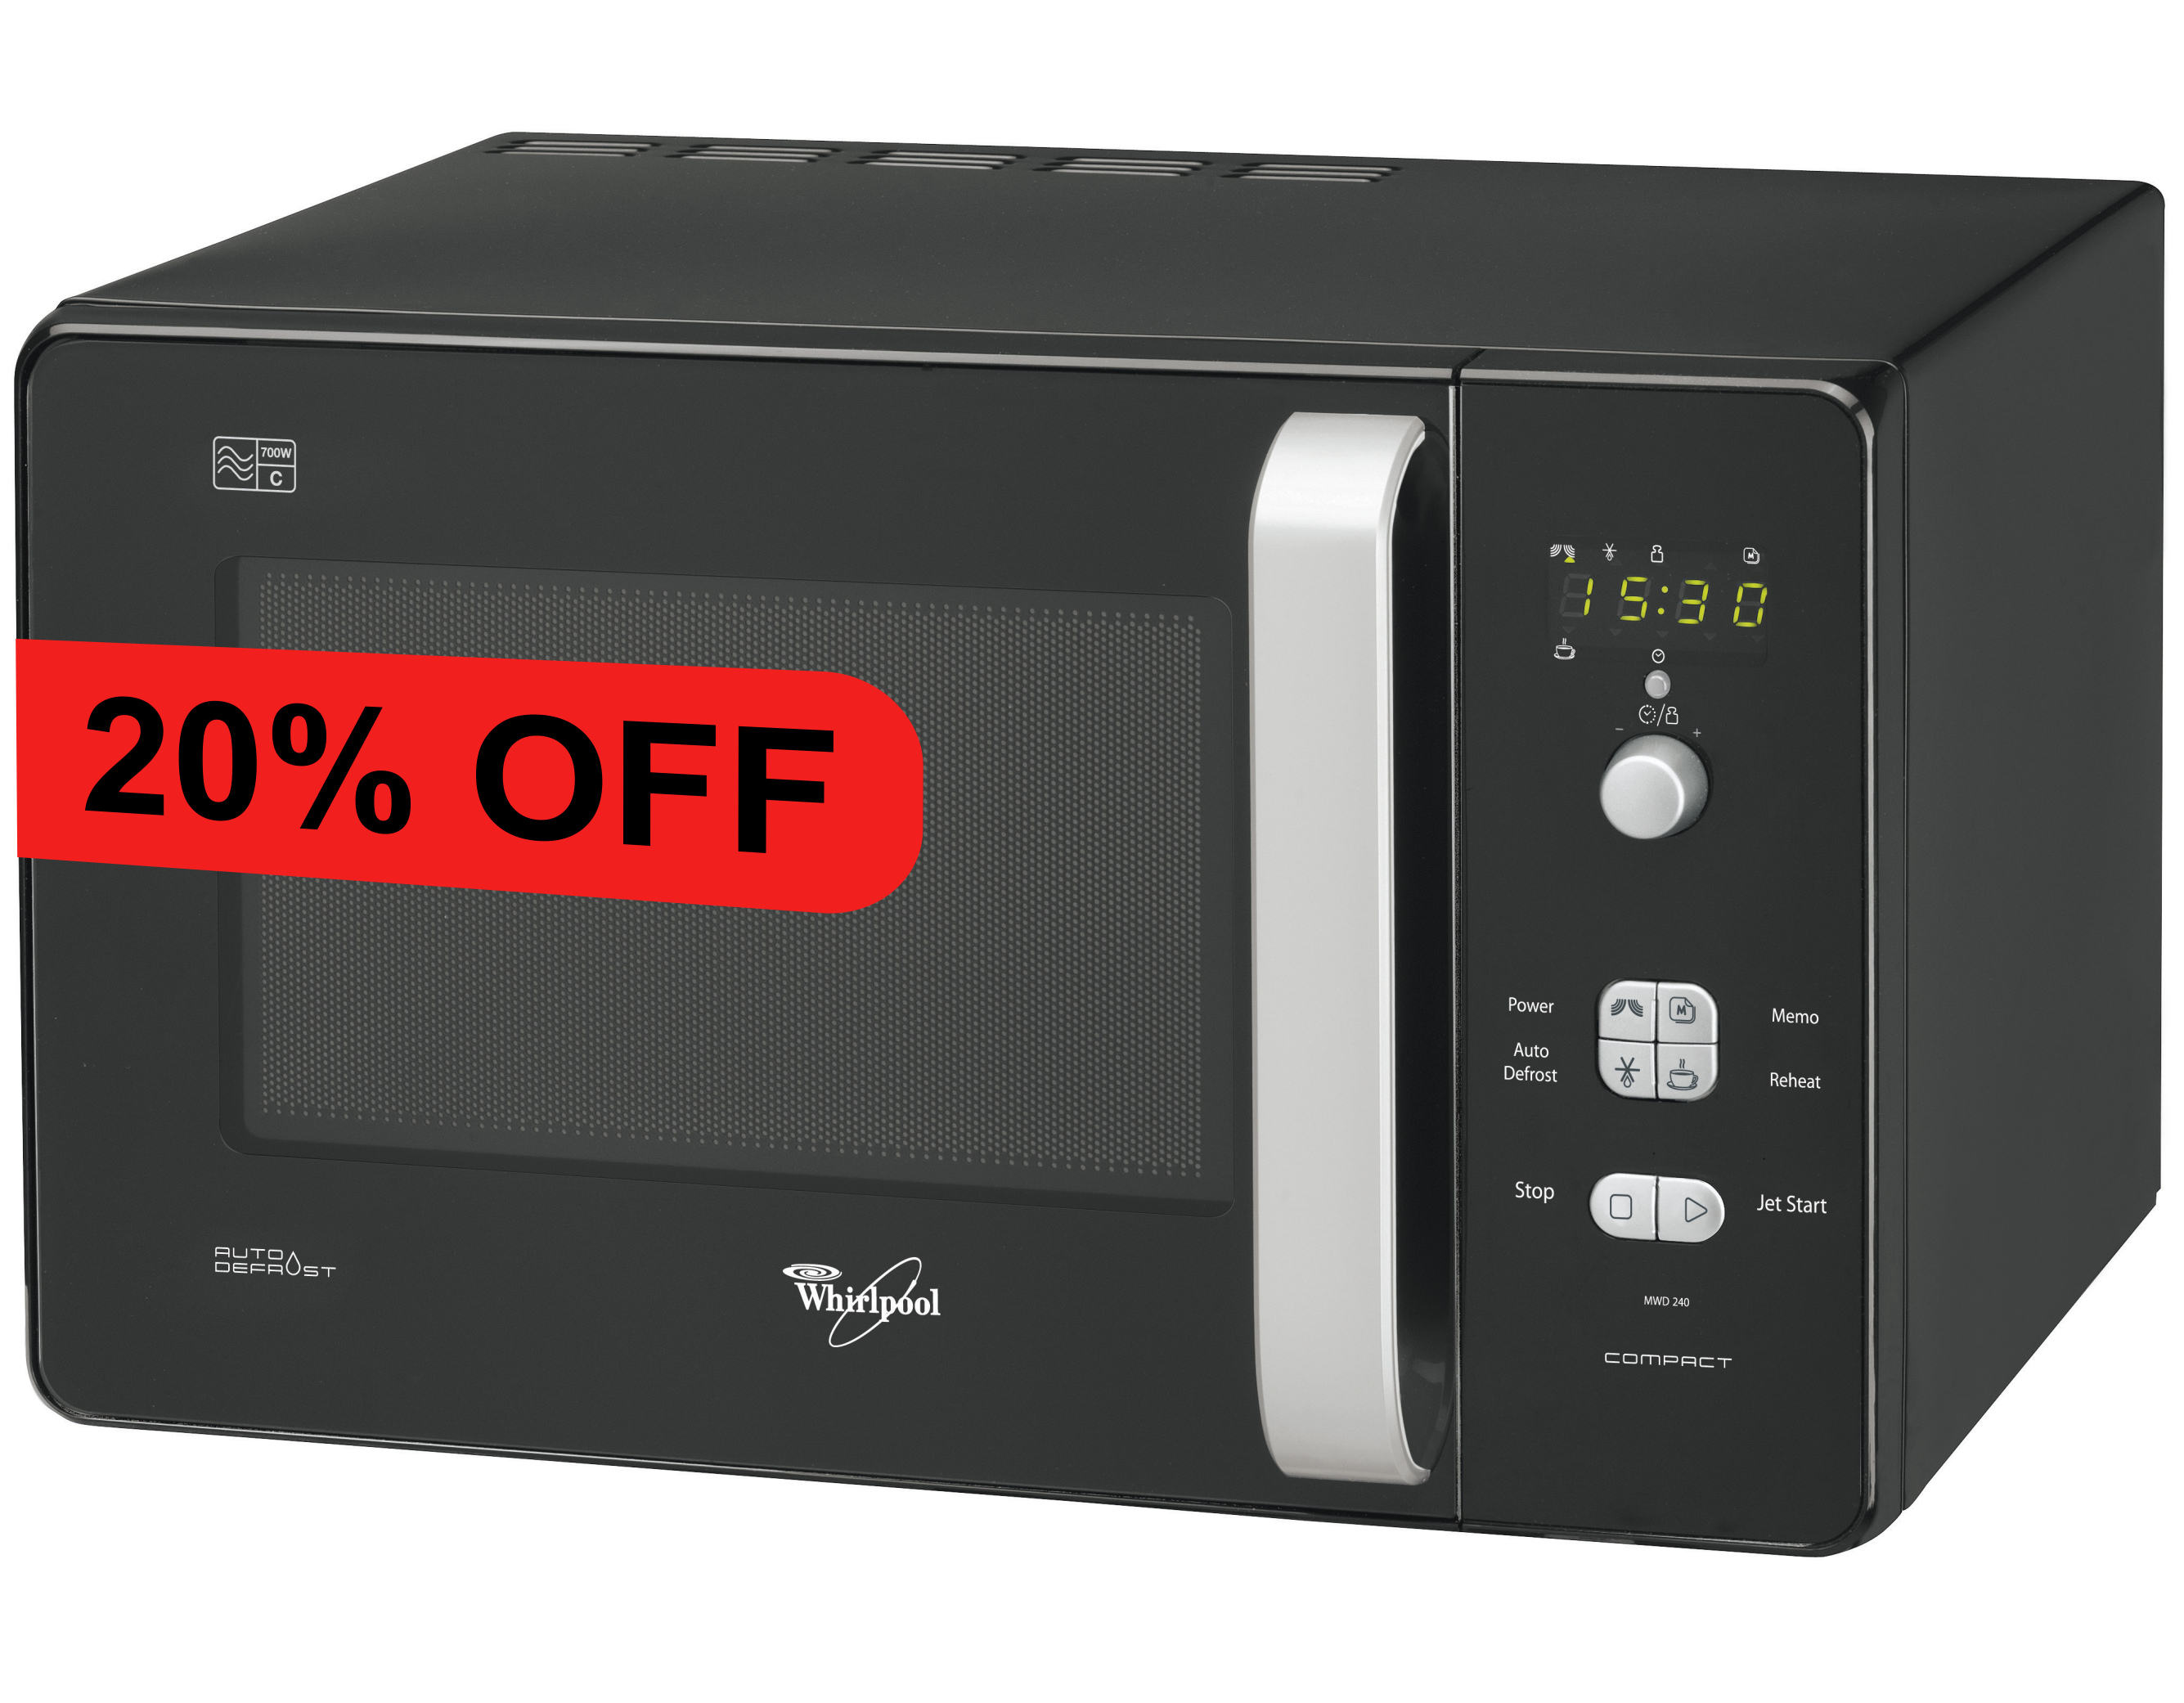 whirlpool mwd 240 microwave oven compact 20l 700 watts auto defrost on popscreen